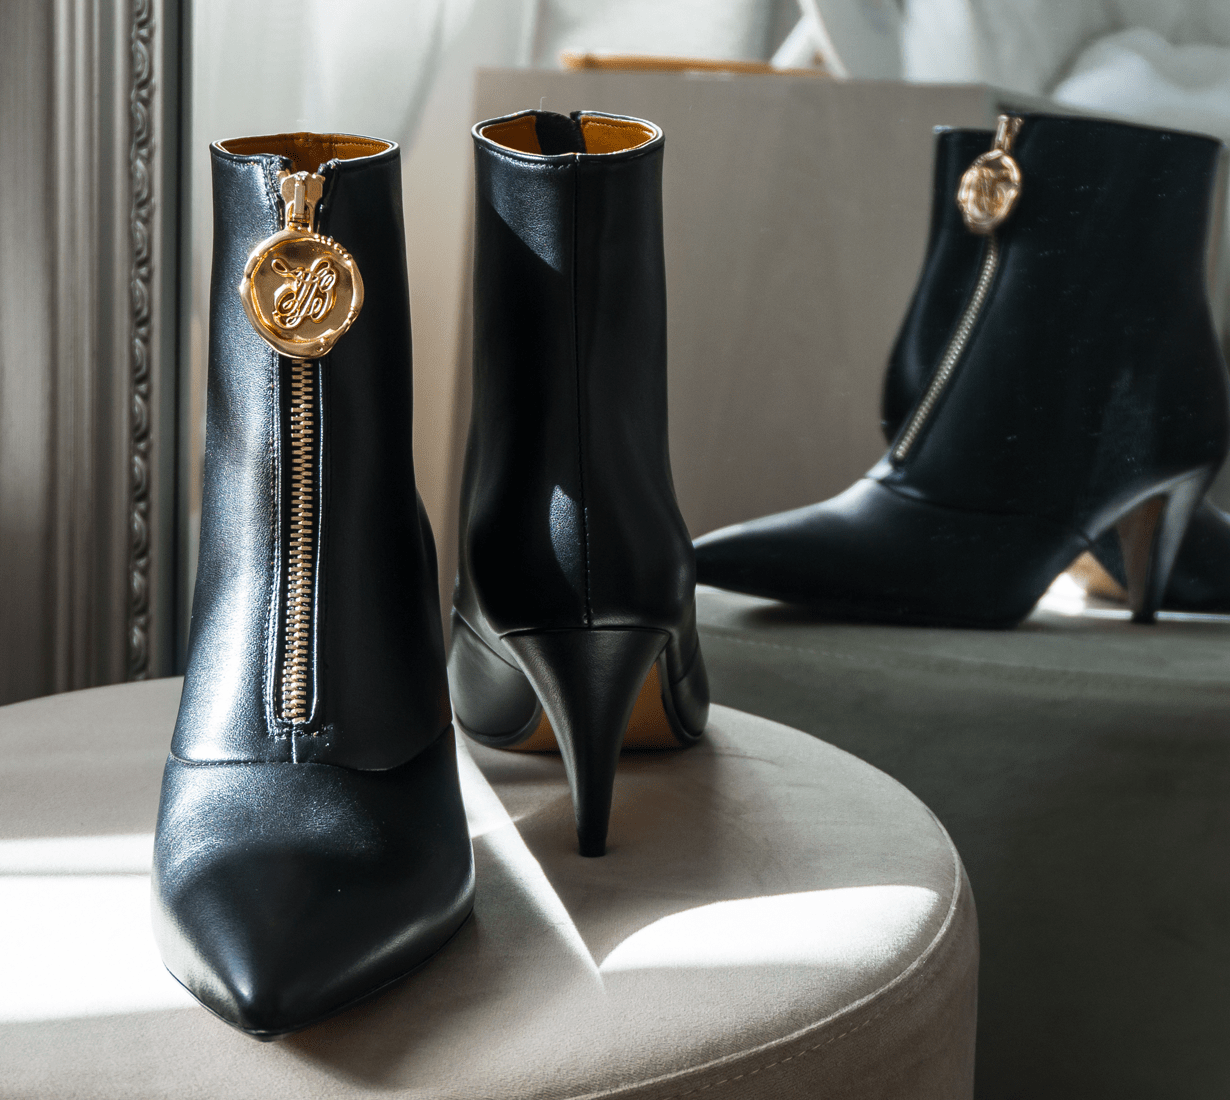 Luxurious, Ethically-made Vegan Boots by Taylor + Thomas